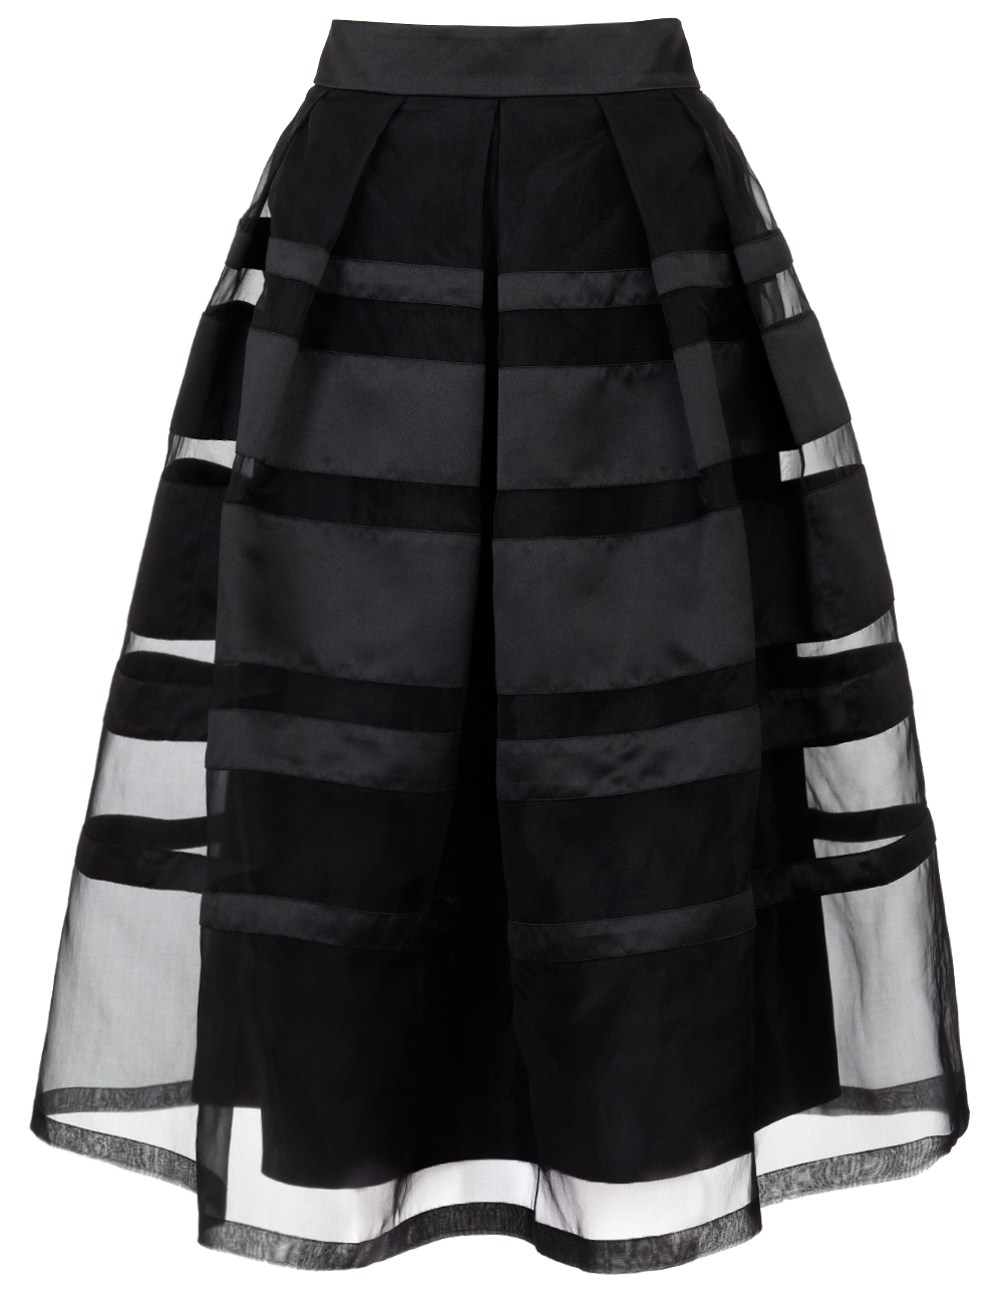 Temperley Black Satin Ribbon Skirt on Avenue 32